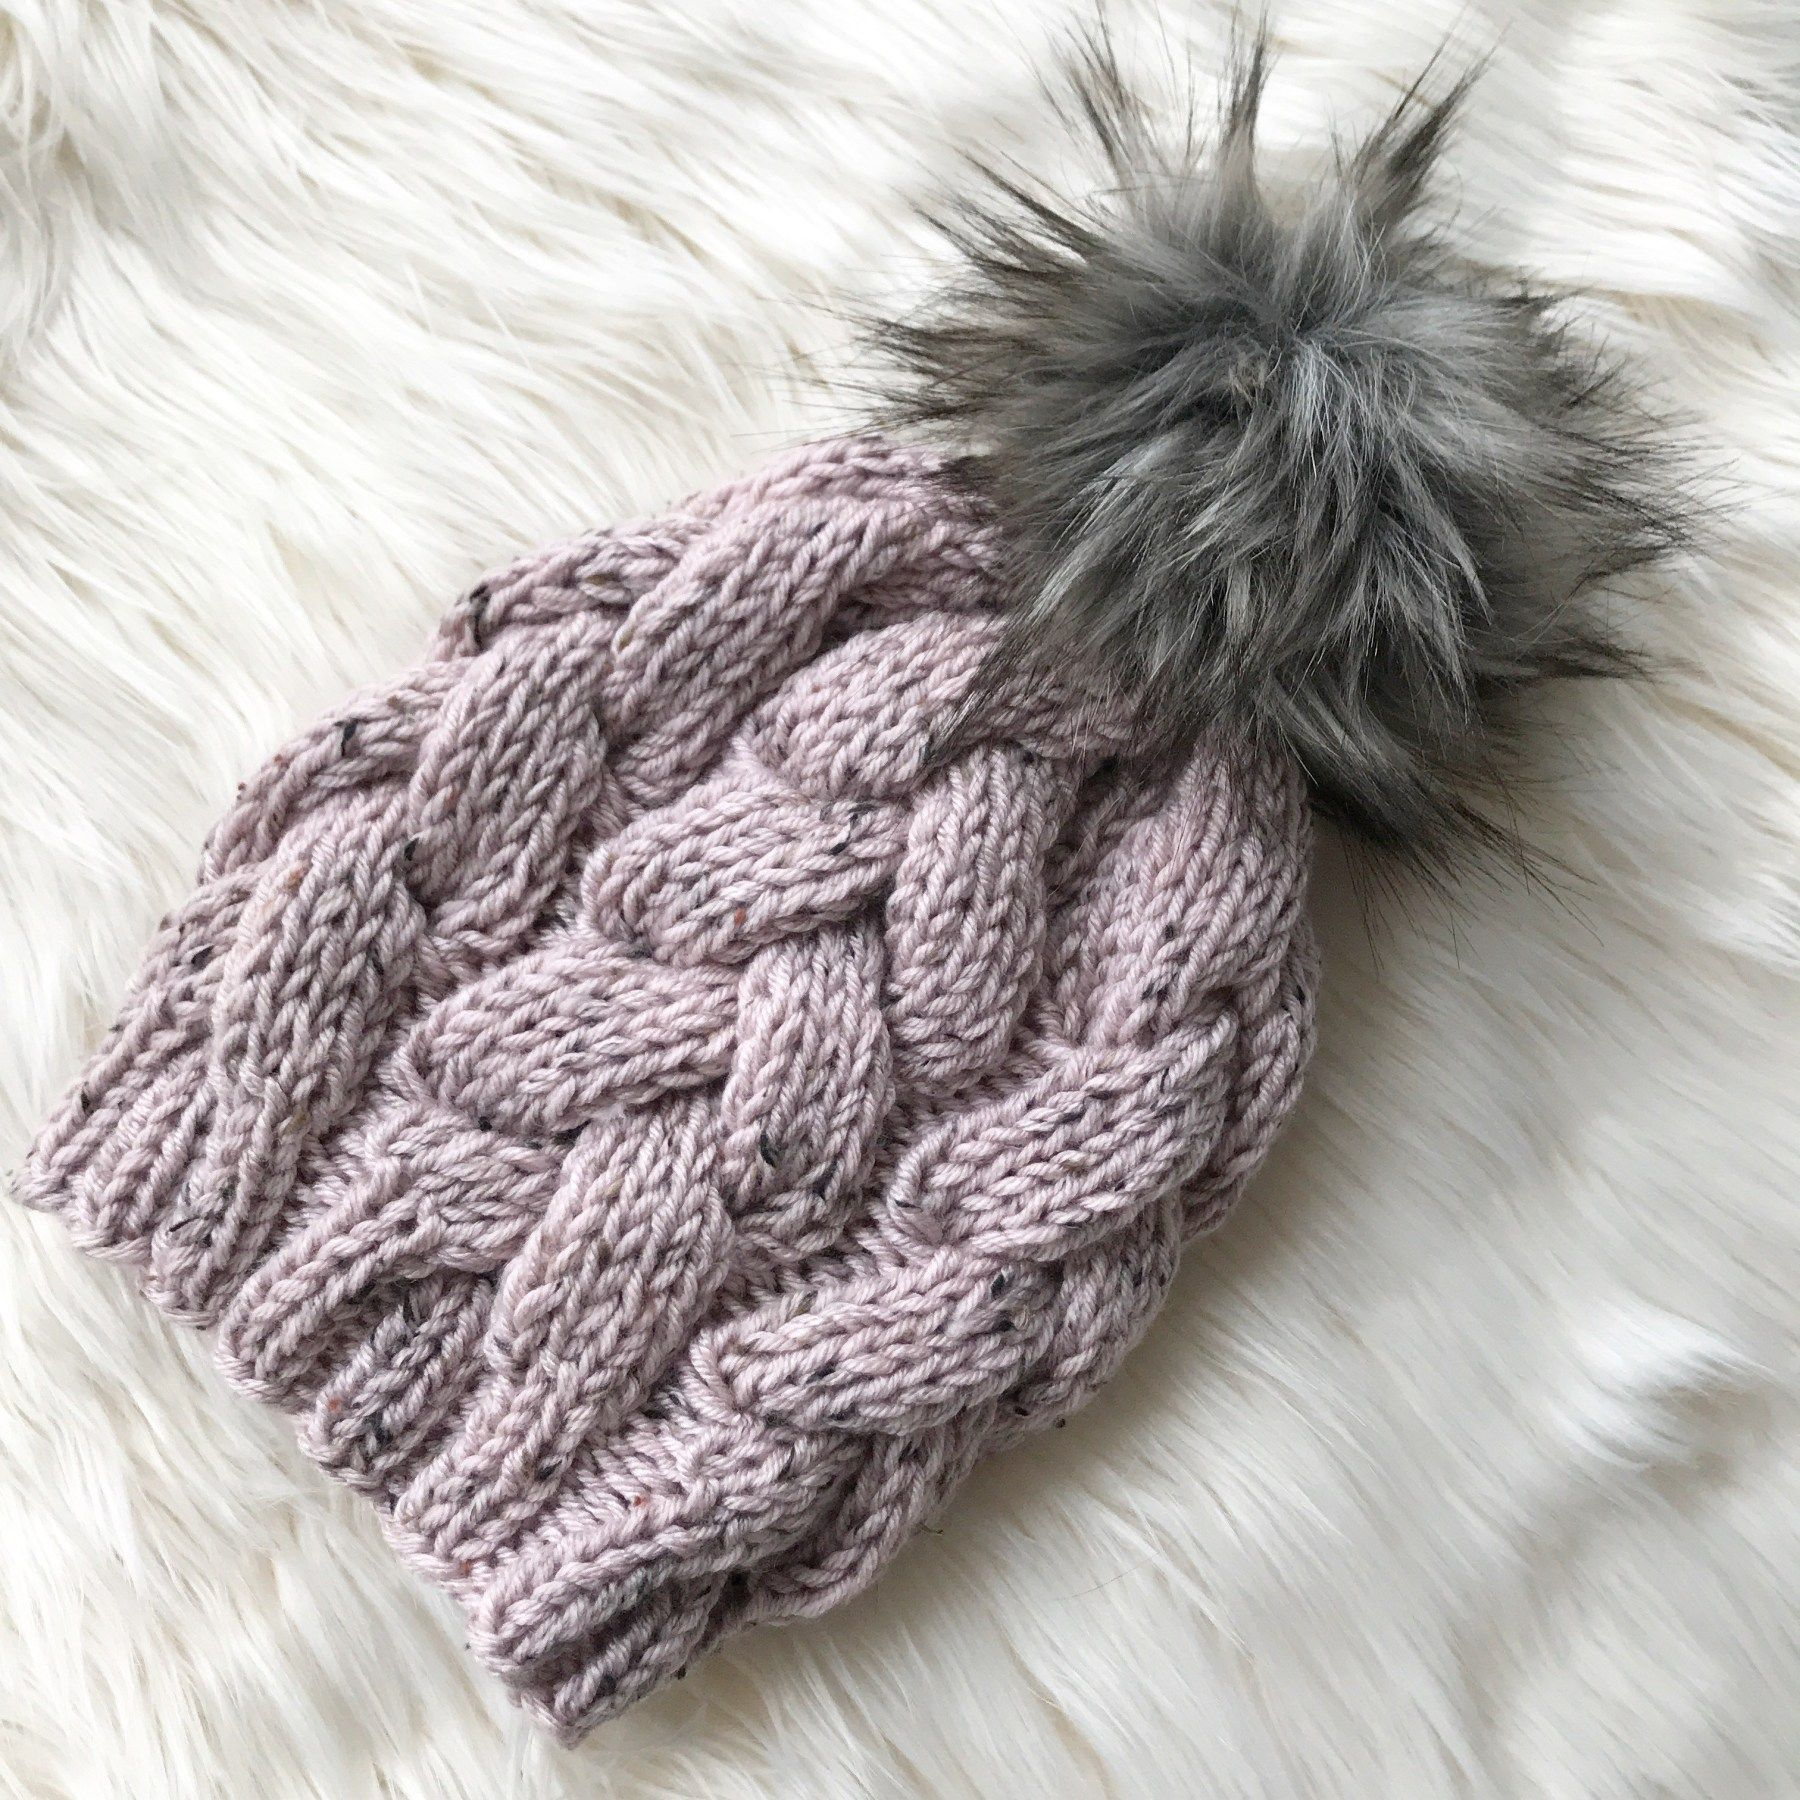 Chunky Braided Beanie | Cable knit hat pattern, Beanie ...